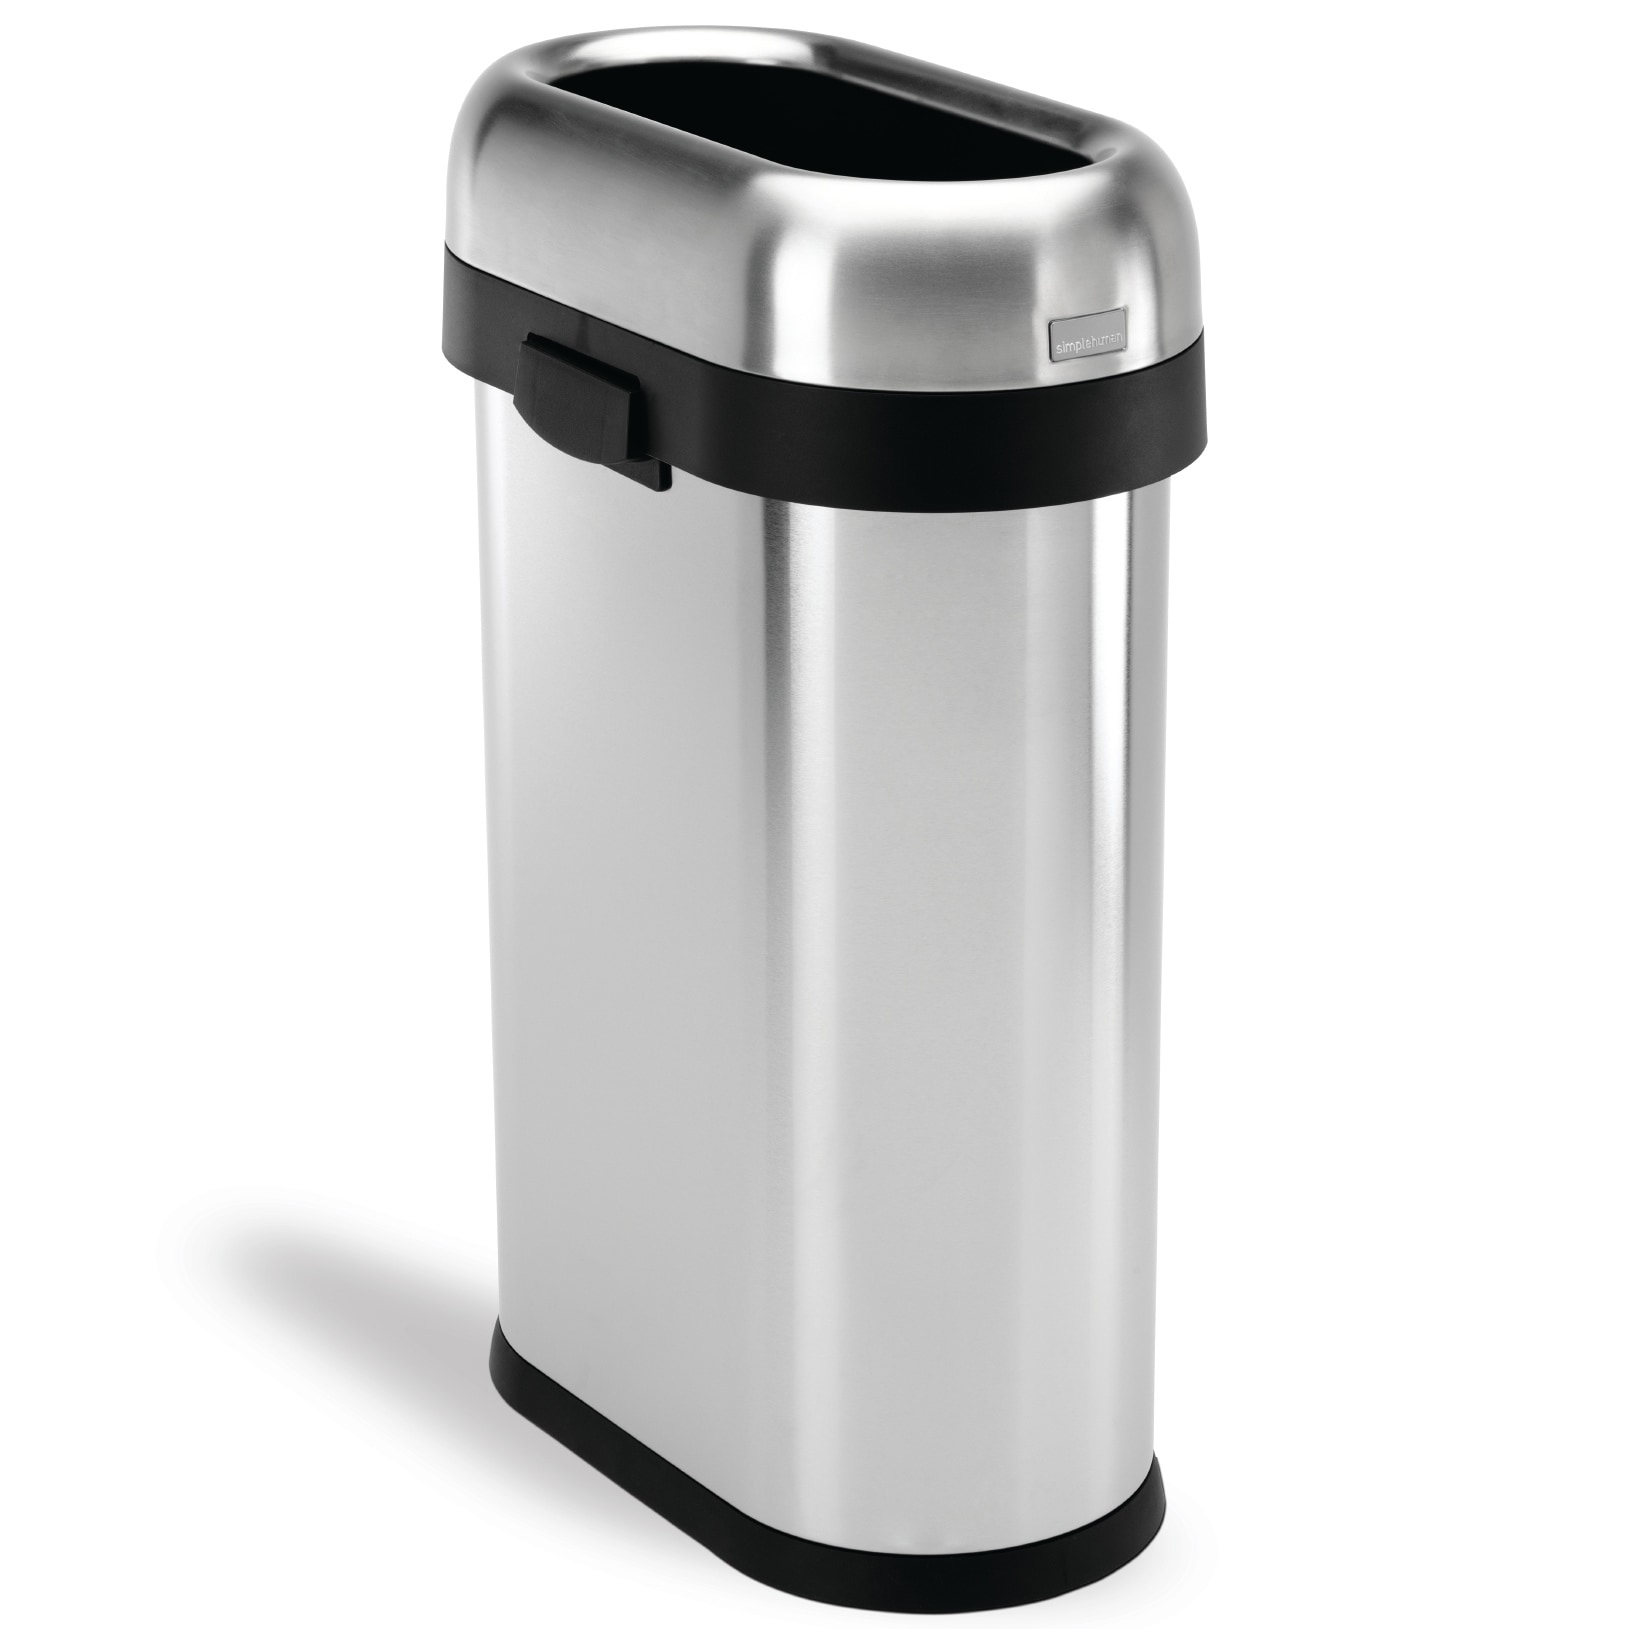 simplehuman Slim Open Brushed Stainless Steel Trash Can 13 gallons/ 50  liters